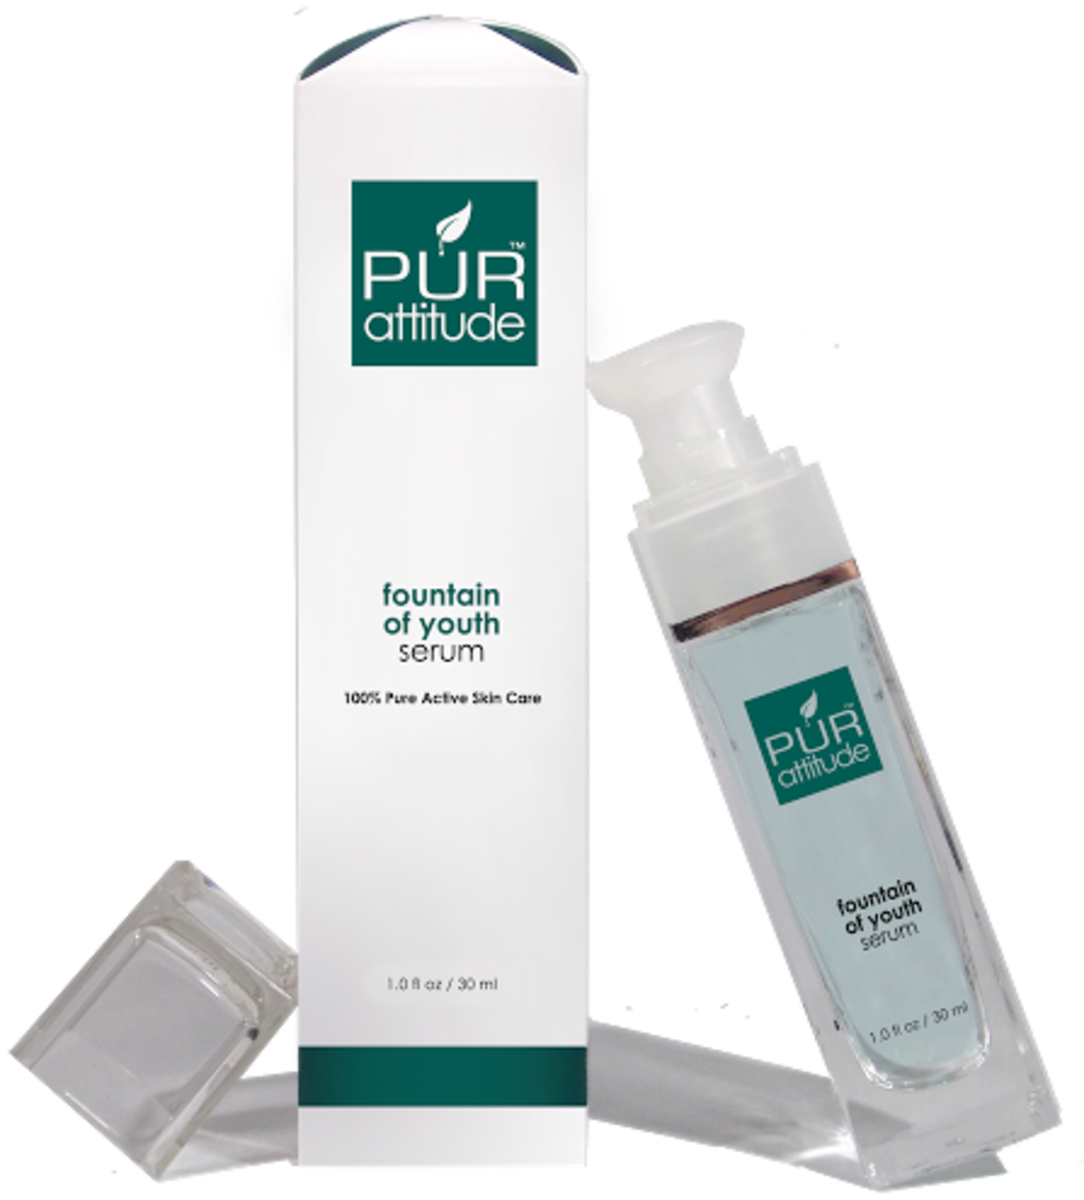 PUR attitude Fountain of Youth Serum